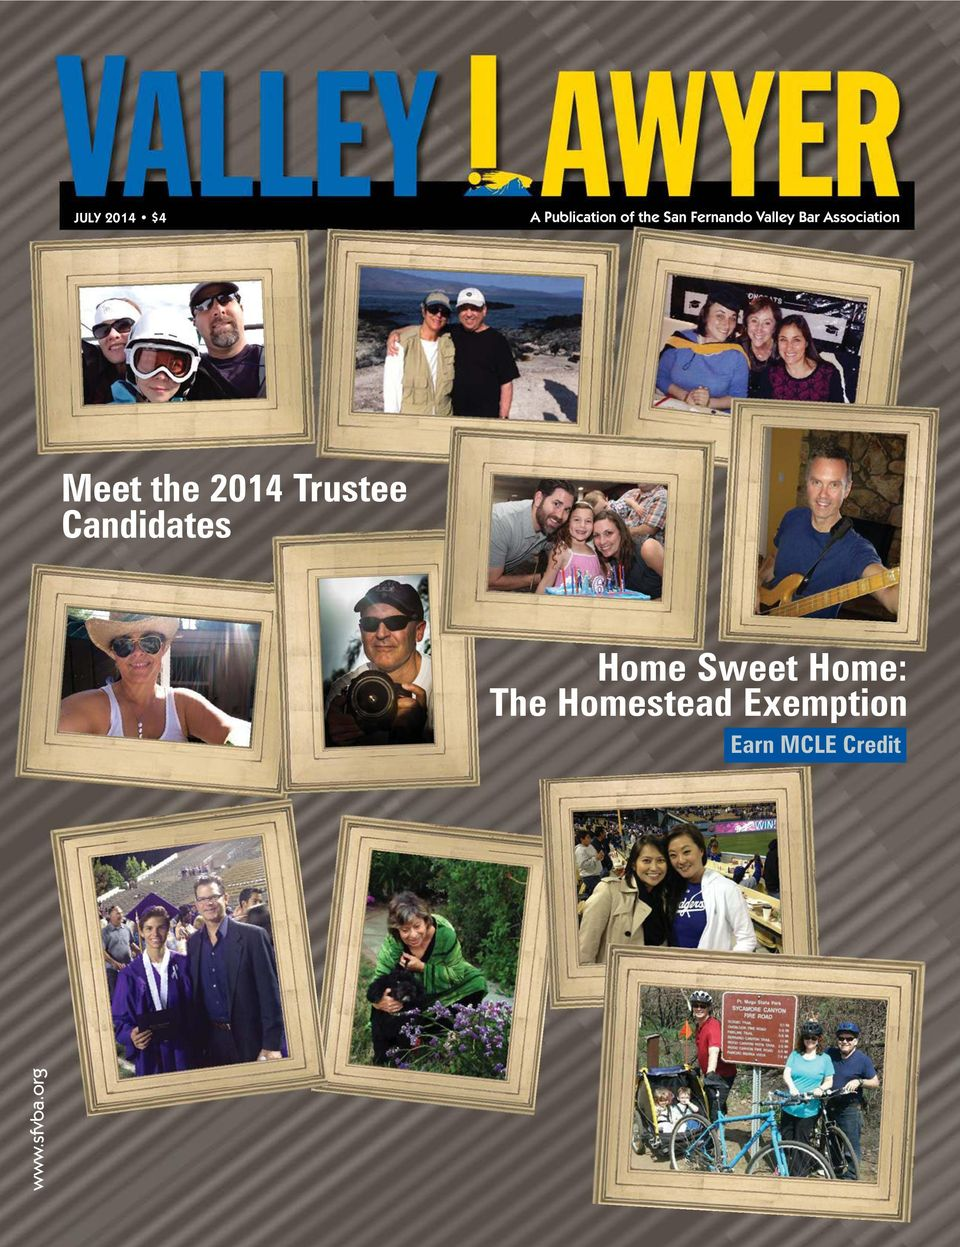 2014 Trustee Candidates Home Sweet Home: